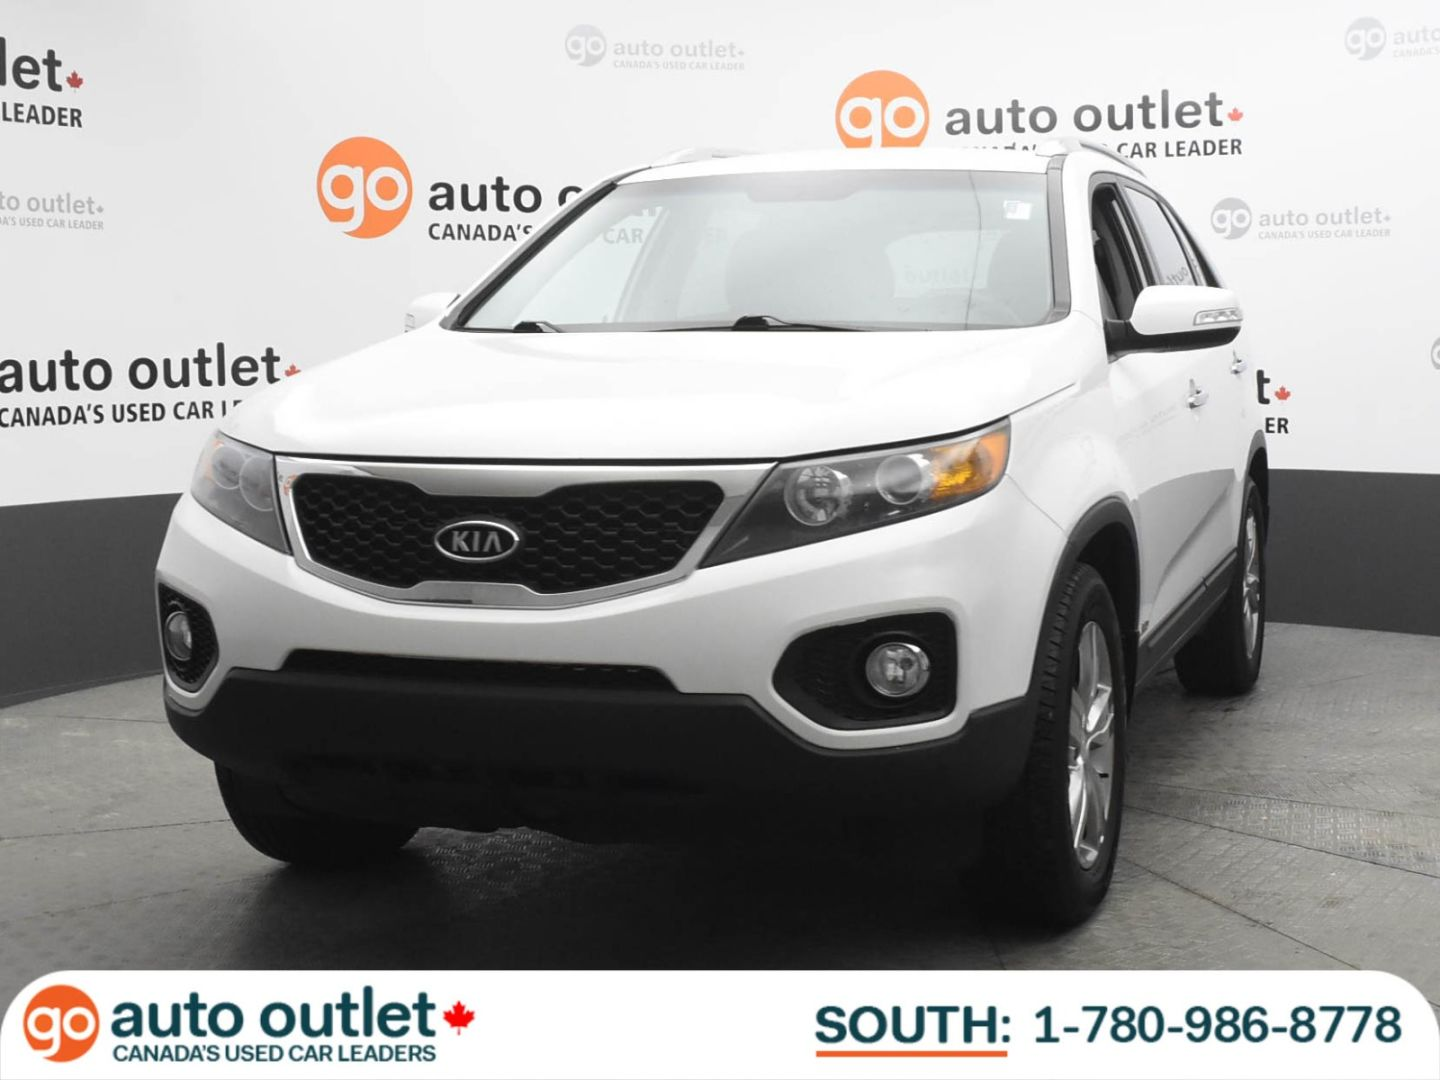 2013 Kia Sorento EX for sale in Leduc, Alberta